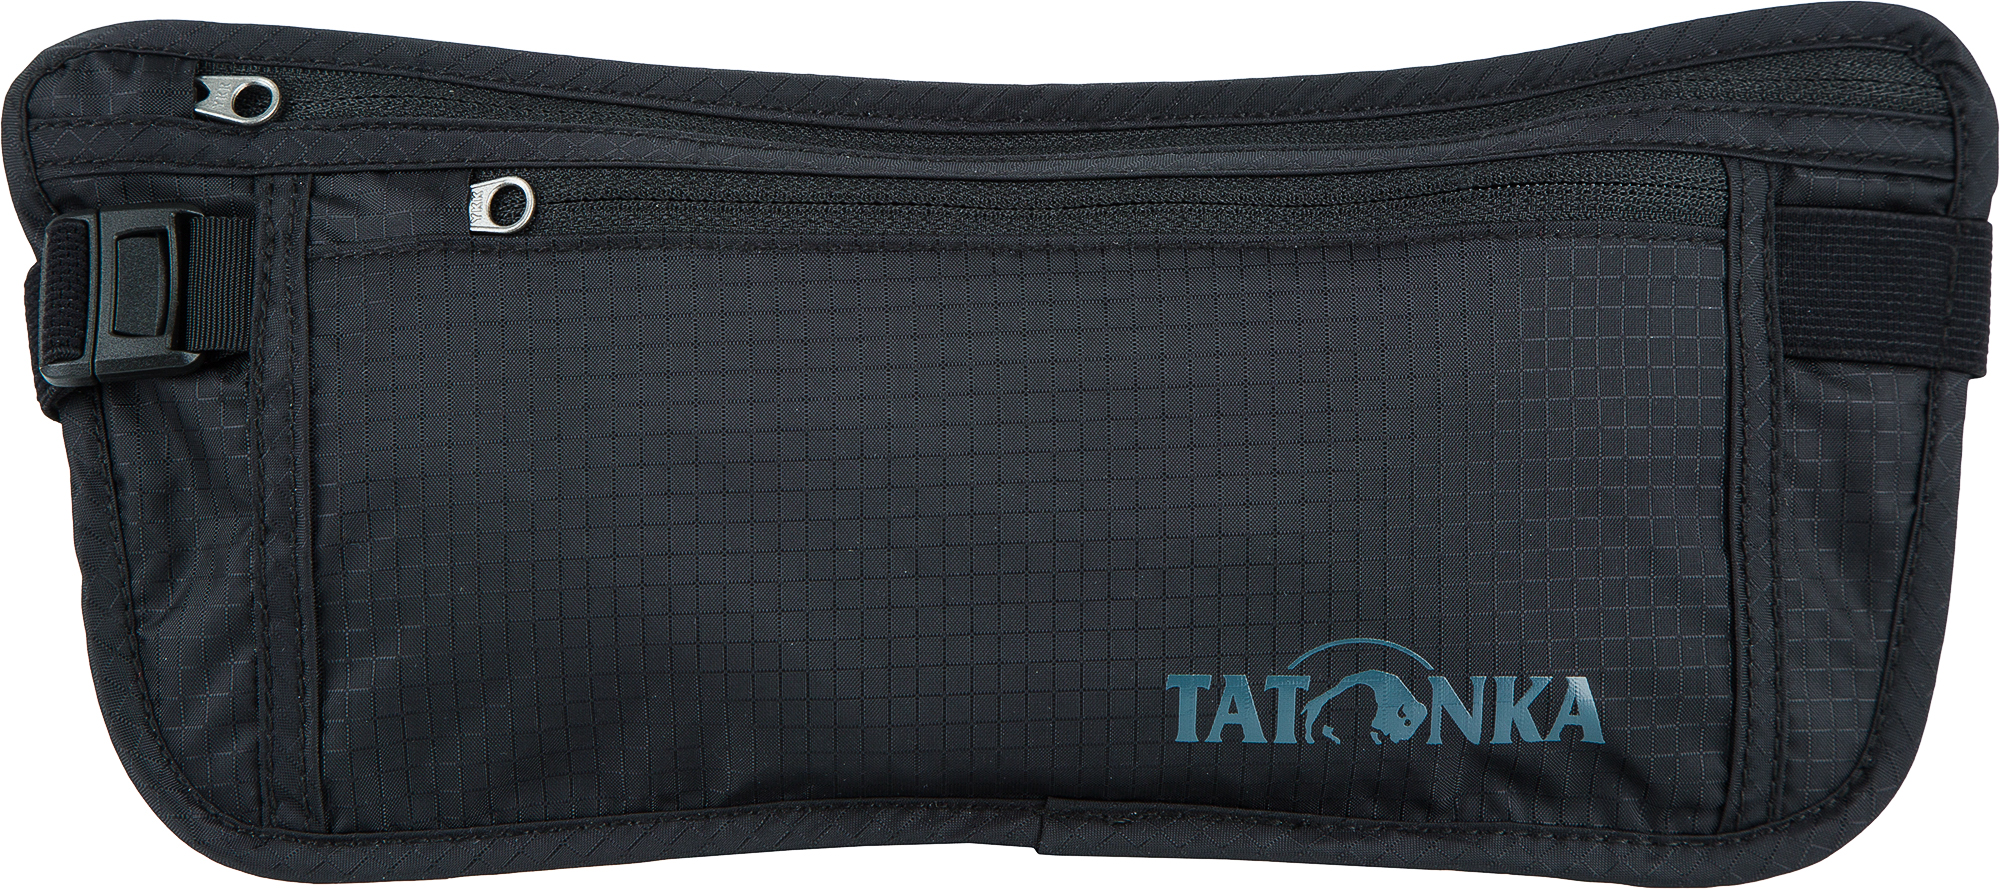 Tatonka Кошелек Tatonka SKIN MONEY BELT кошелек tatonka travel wallet цвет синий 2915 004